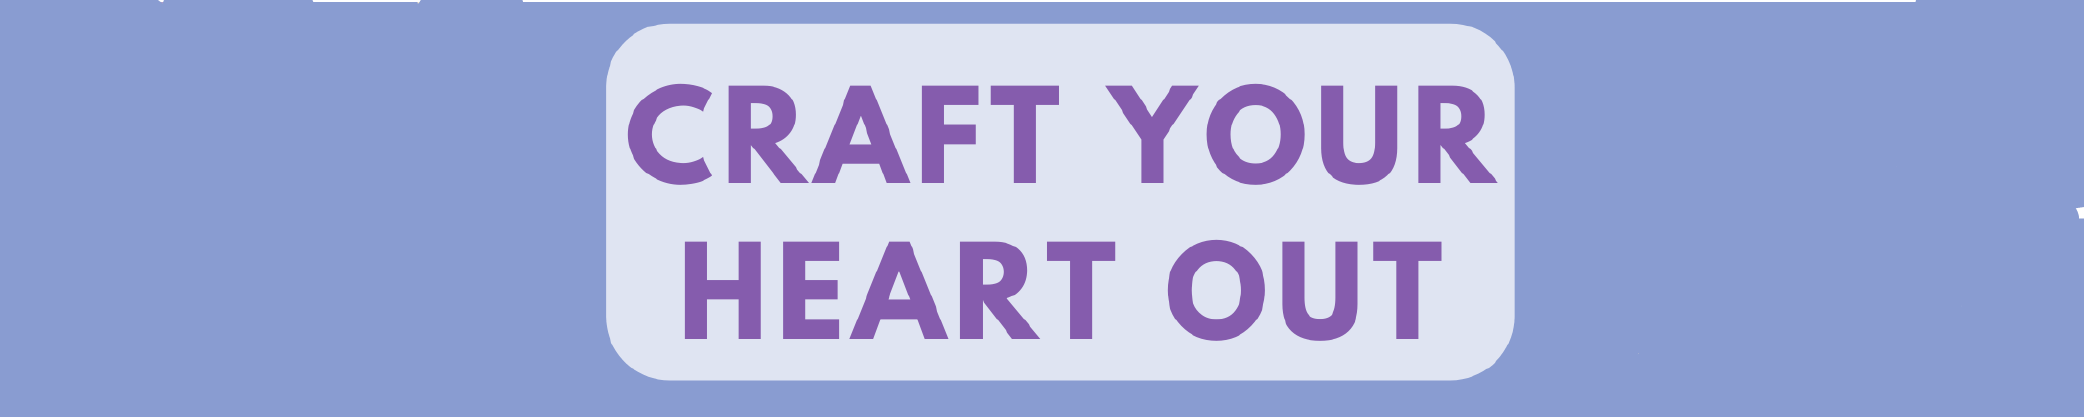 Craft Your Heart Out